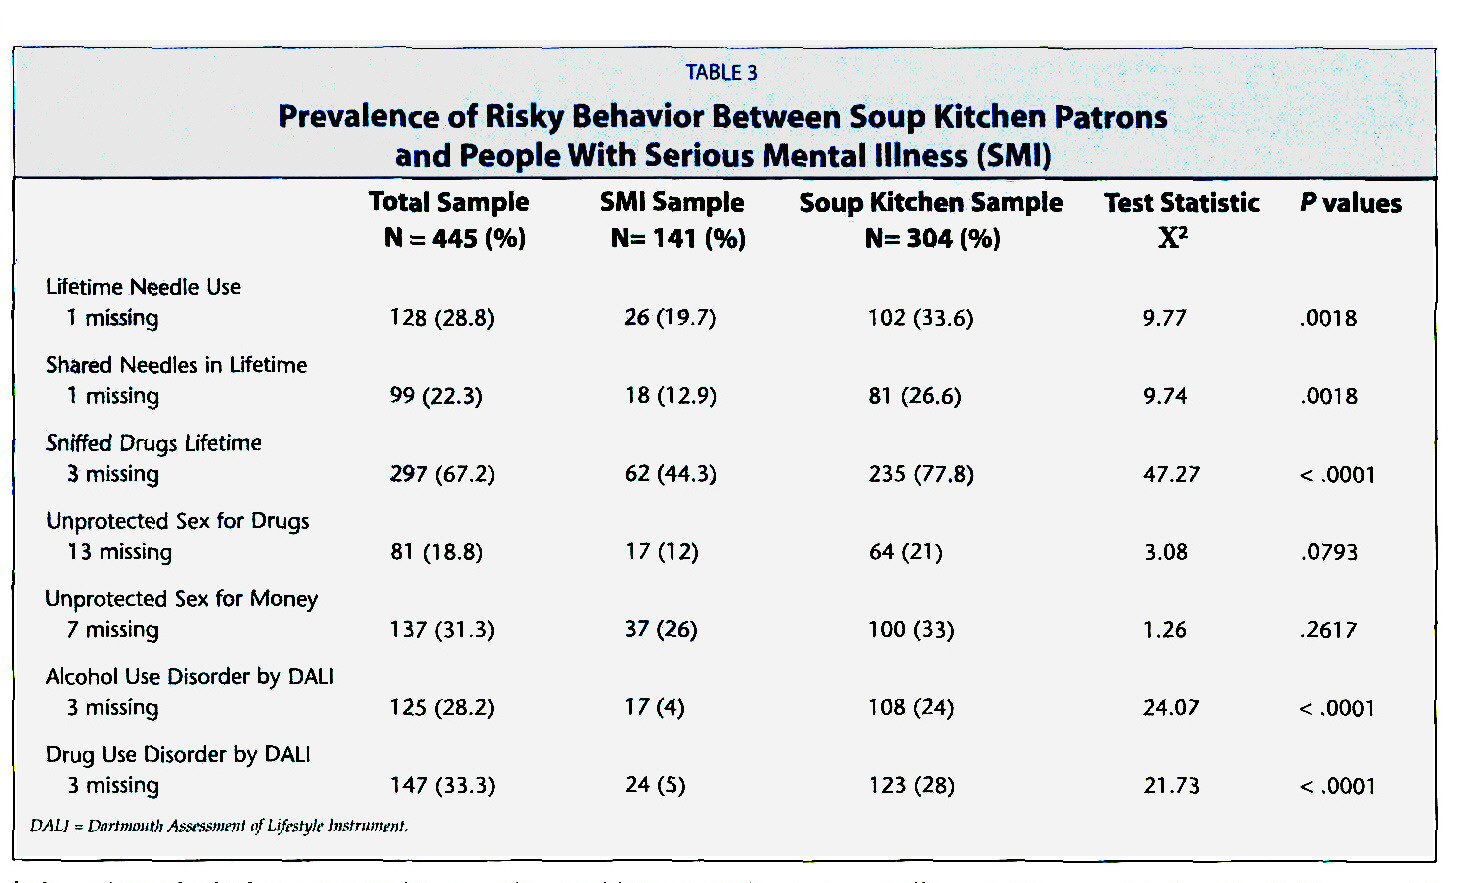 TABLE 3Prevalence of Risky Behavior Between Soup Kitchen Patrons and People With Serious Mental Illness (SMI)